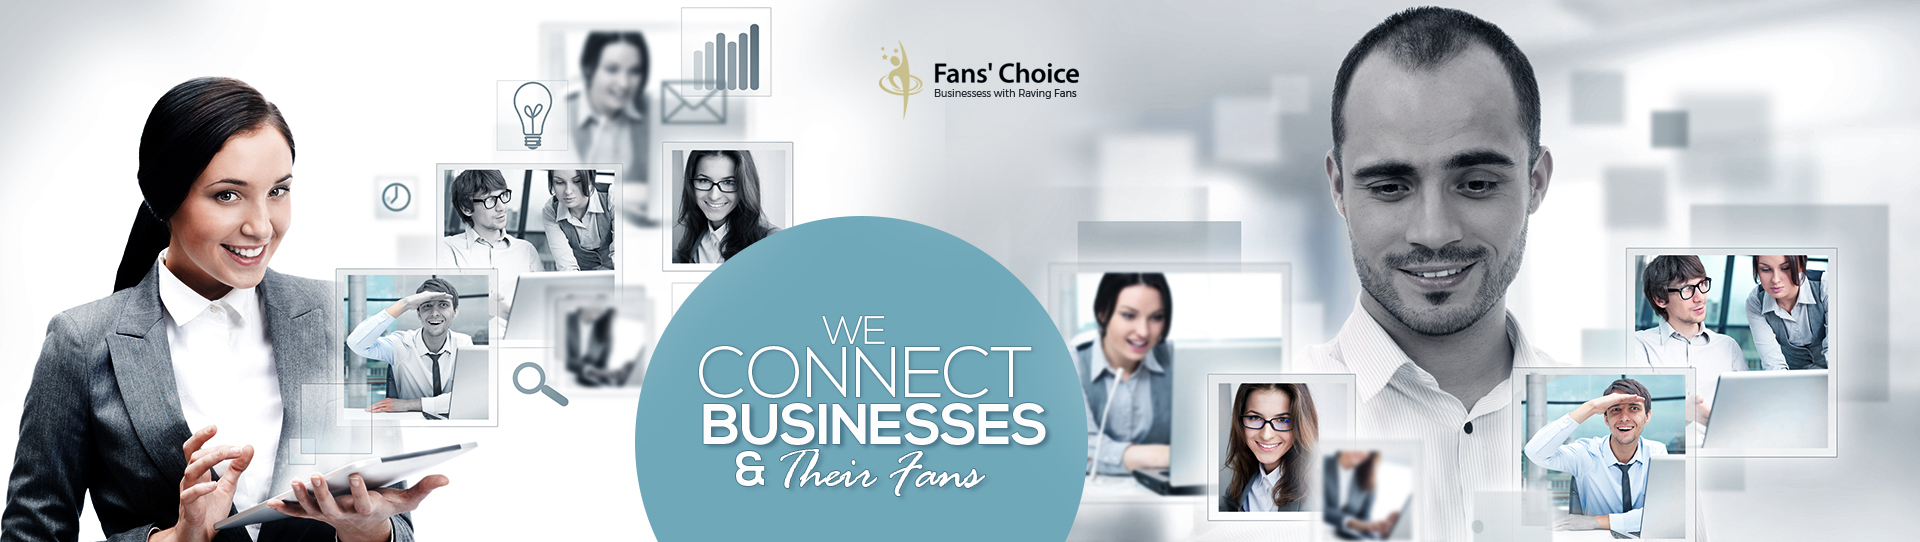 We connect businesses